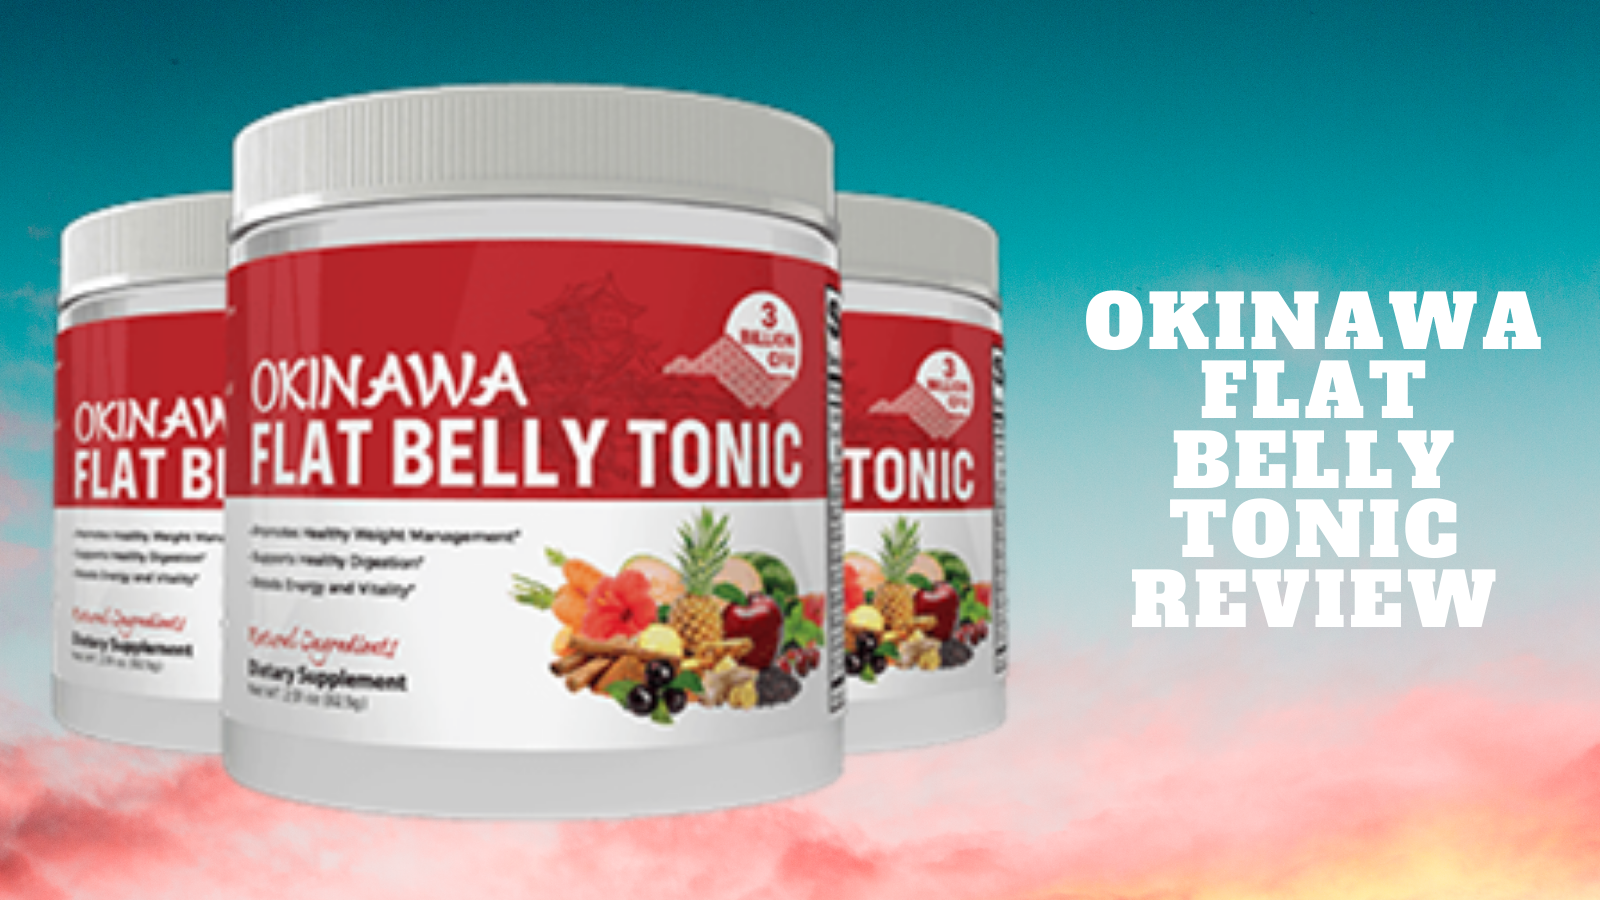 What Is Okinawa Flat Belly Tonic?